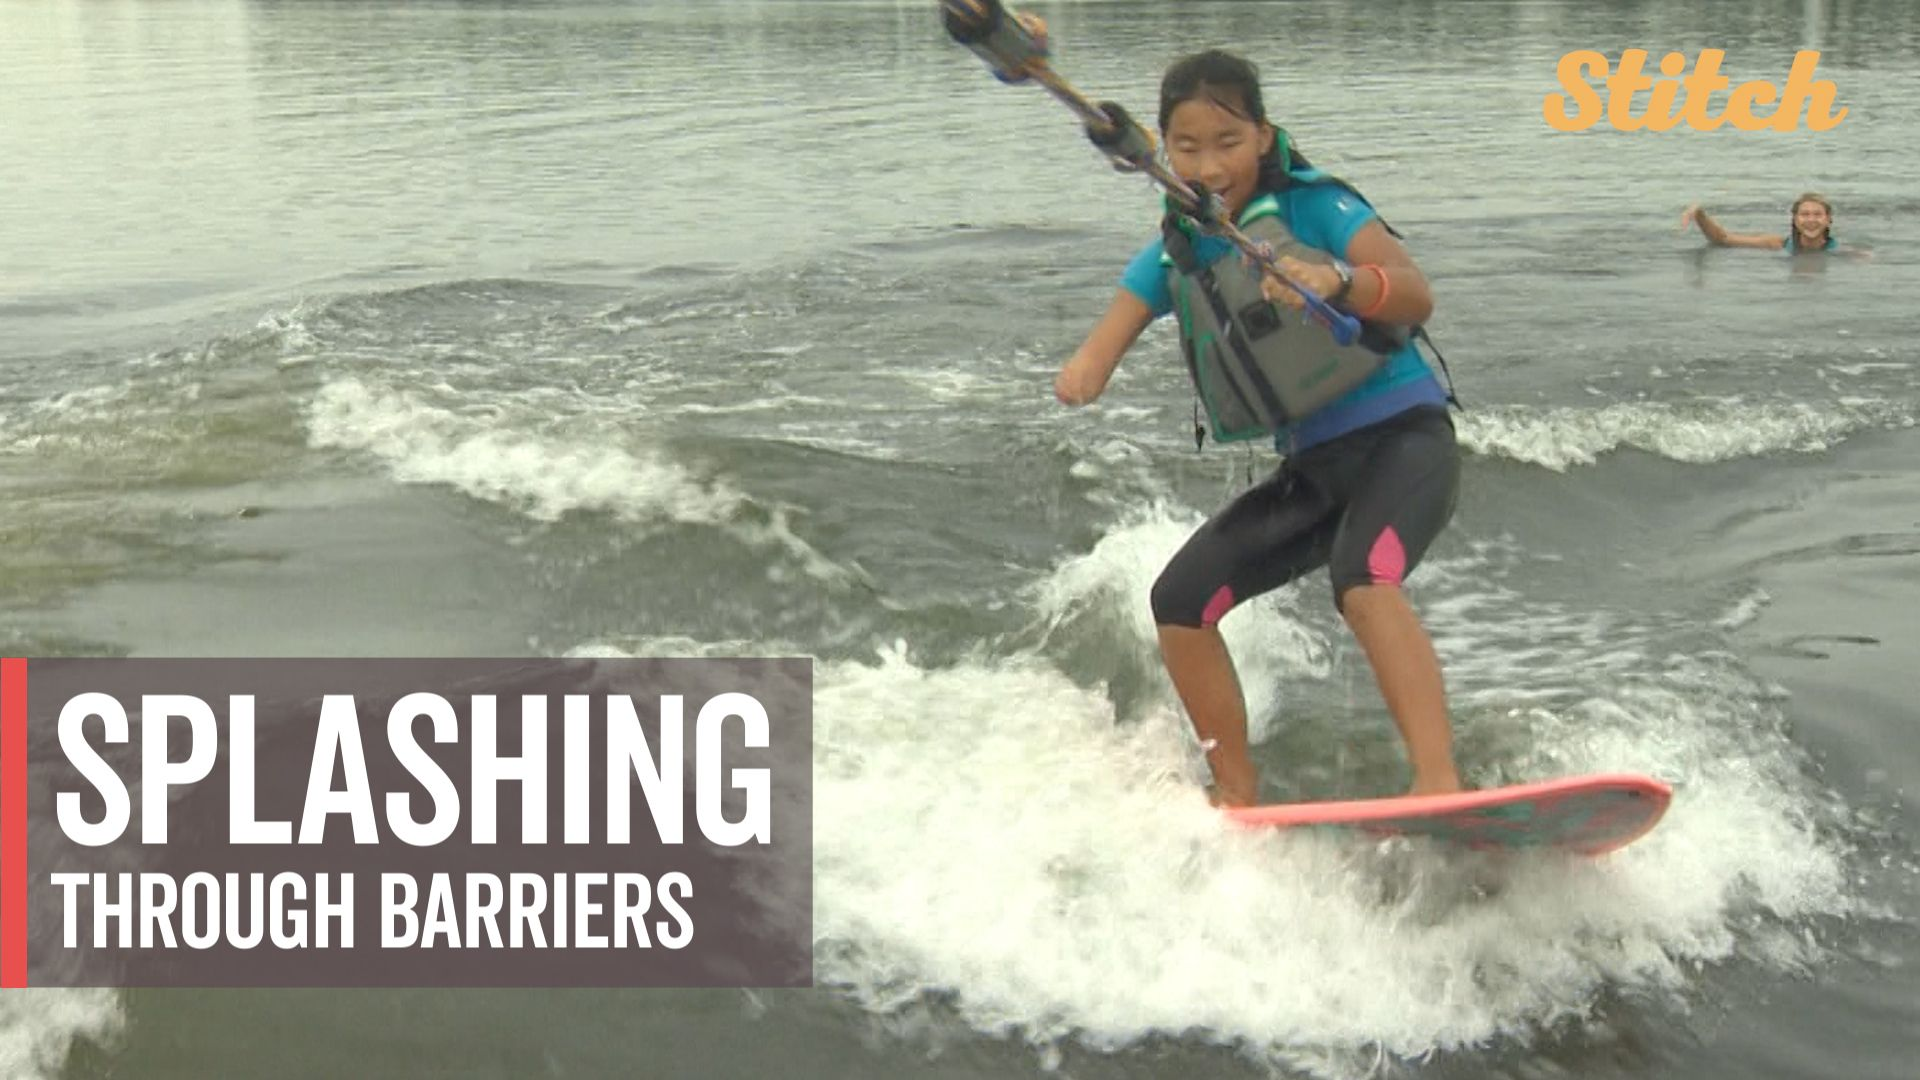 https://www.kcra.com/article/splashing-through-barriers-water-sports-program-assists-people-with-disabilities/28111536  https://hips.hearstapps.com/htv-prod/images/stitch-190616-amputee-water-thumb-1561009989.jpg  Water sports program assists people ...